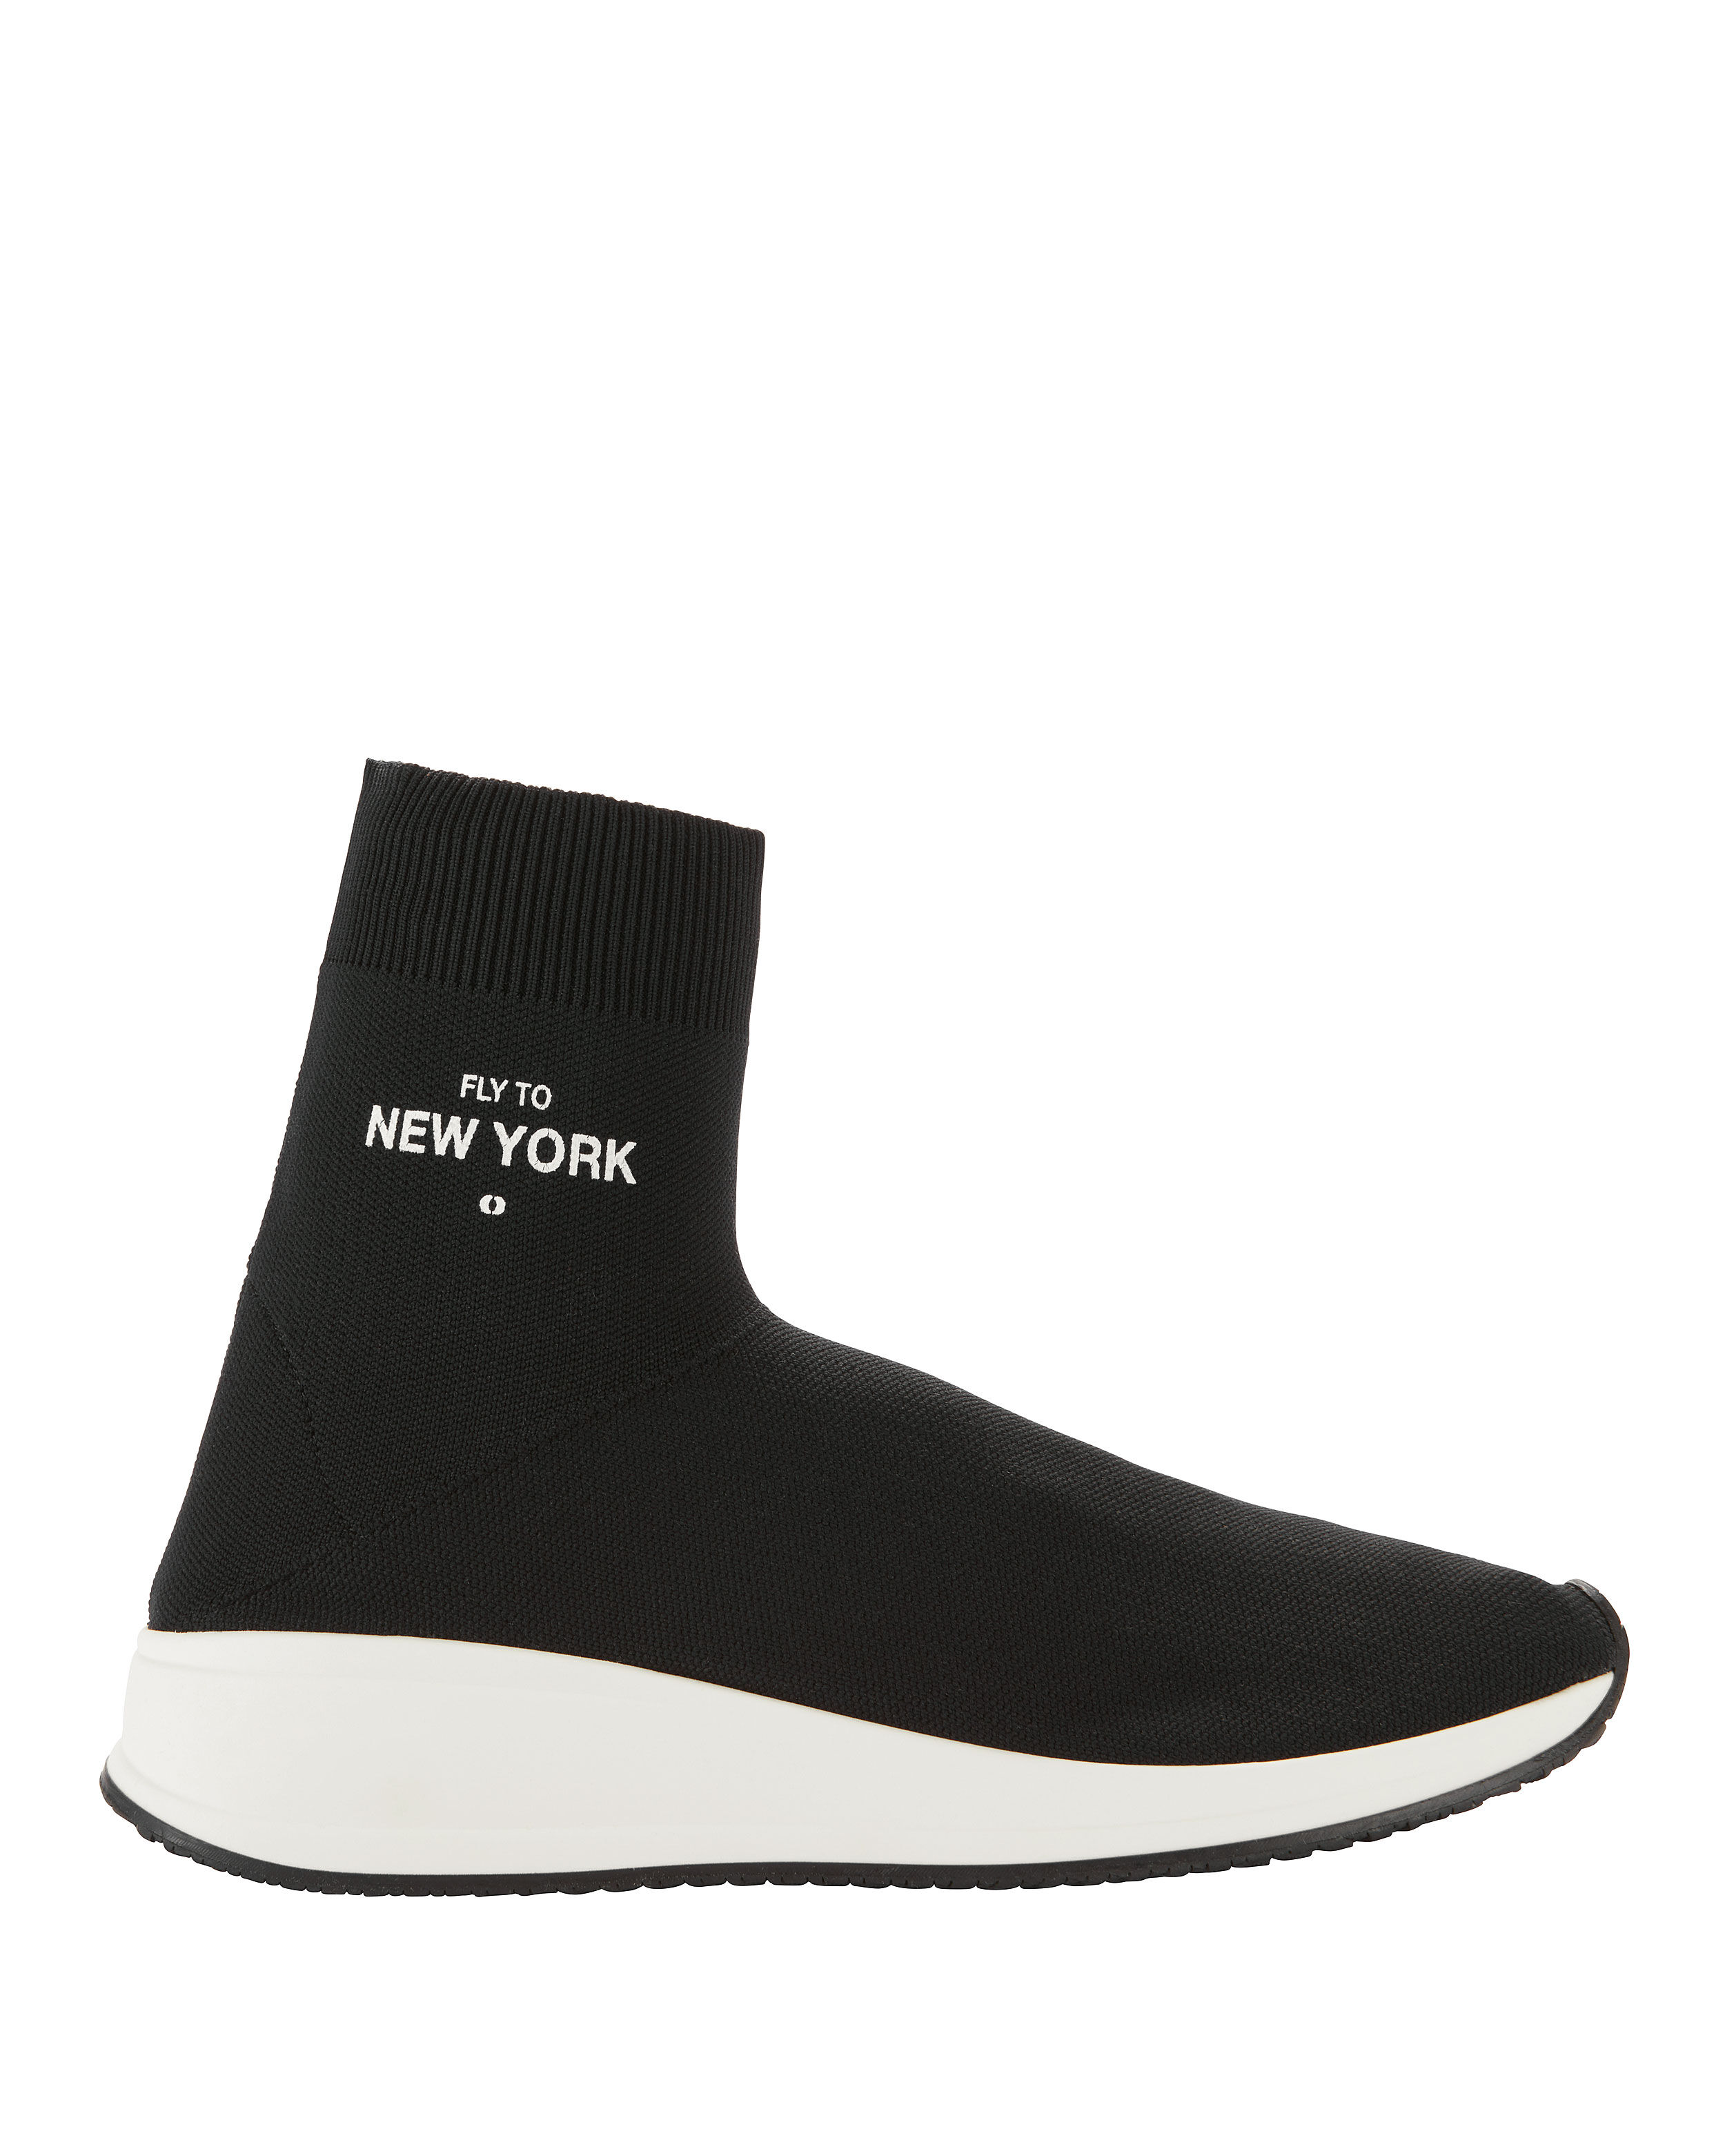 Valentino Black 'Fly Me To New York' Sock Sneakers